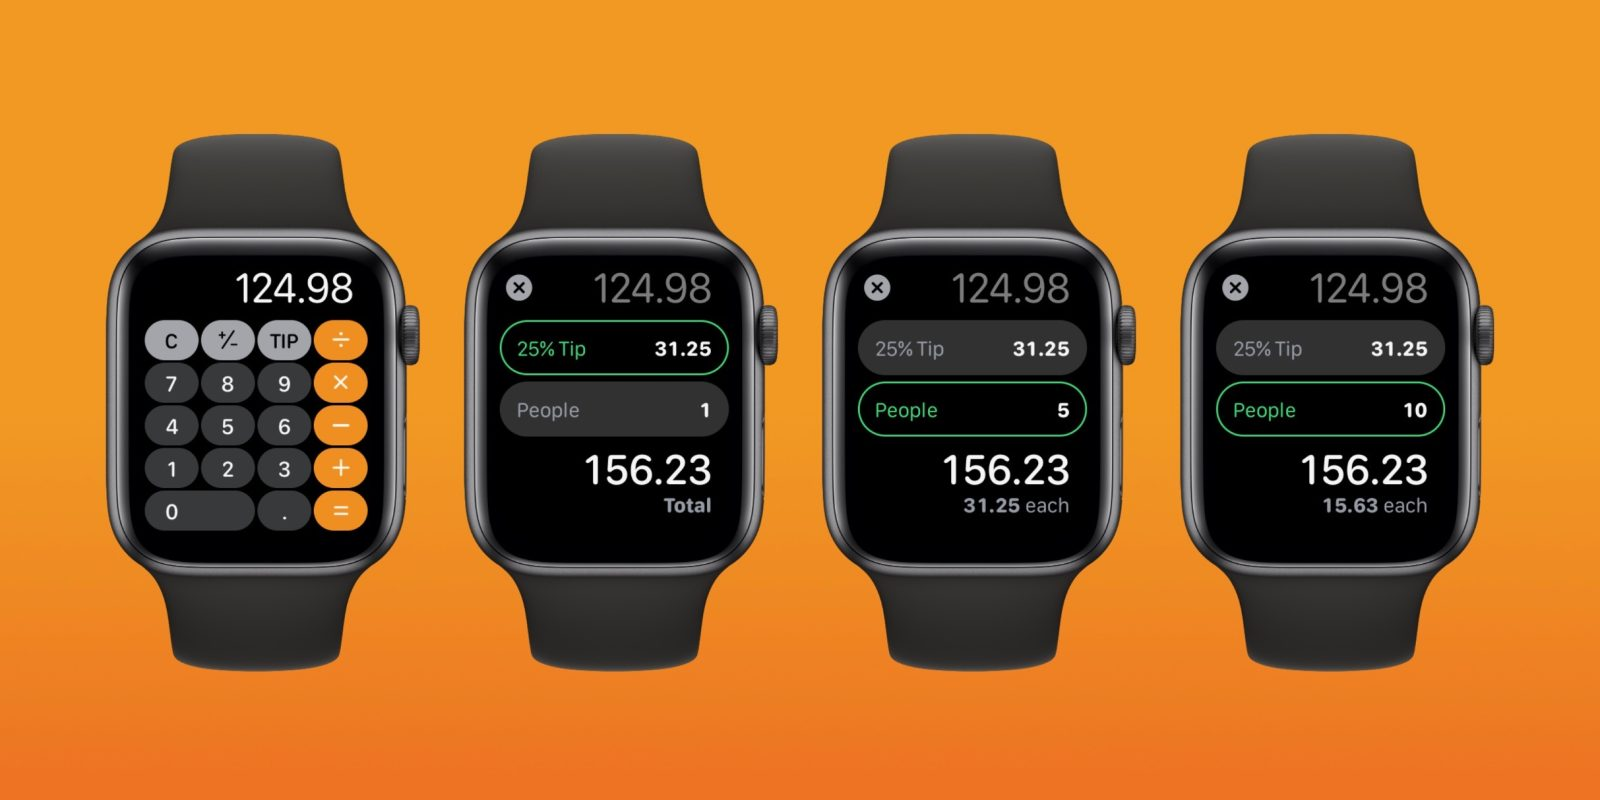 watchOS 6: How to use the split bill and tip calculator features on Apple Watch